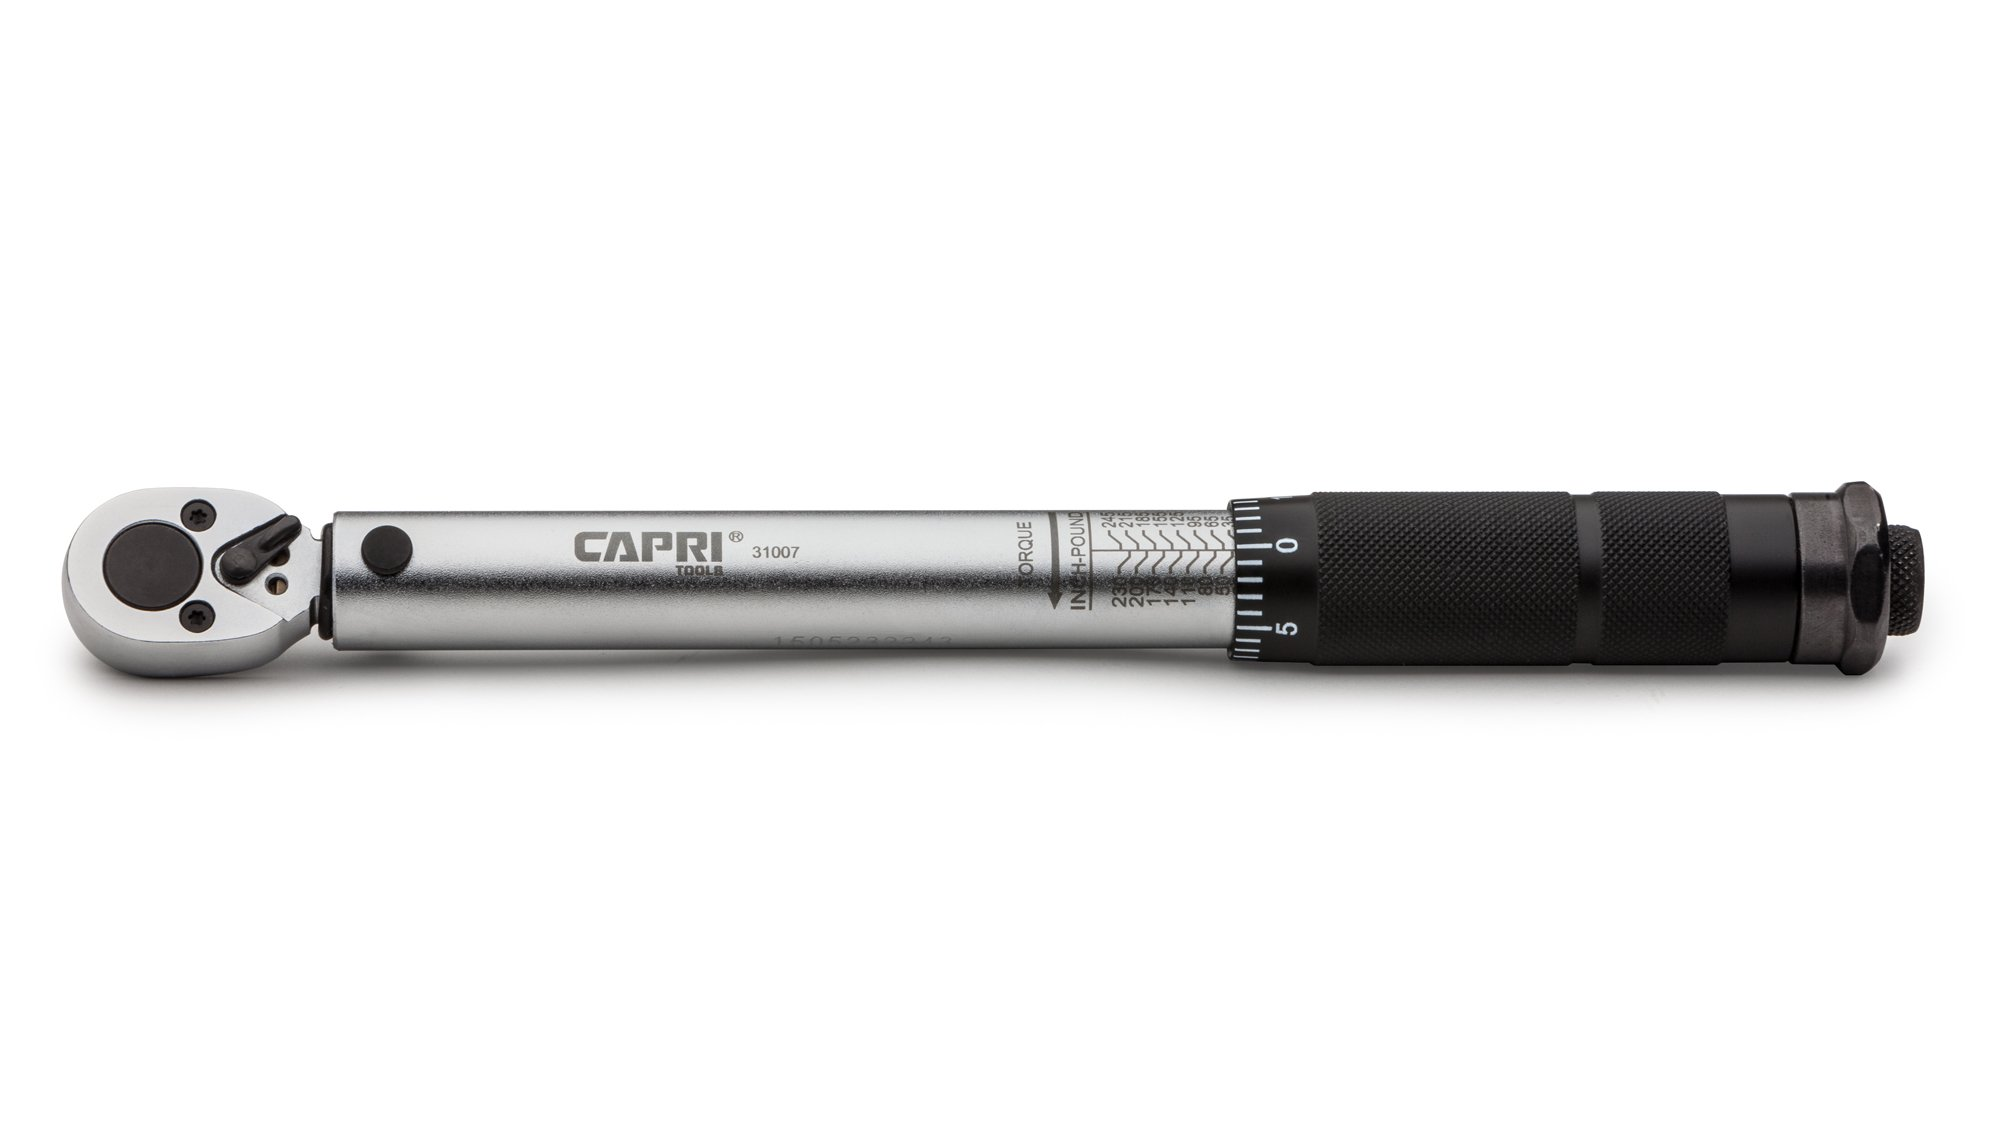 Capri Tools 31007 20-245 Inch Pound Torque Wrench, 1/4-Inch Drive by Capri Tools